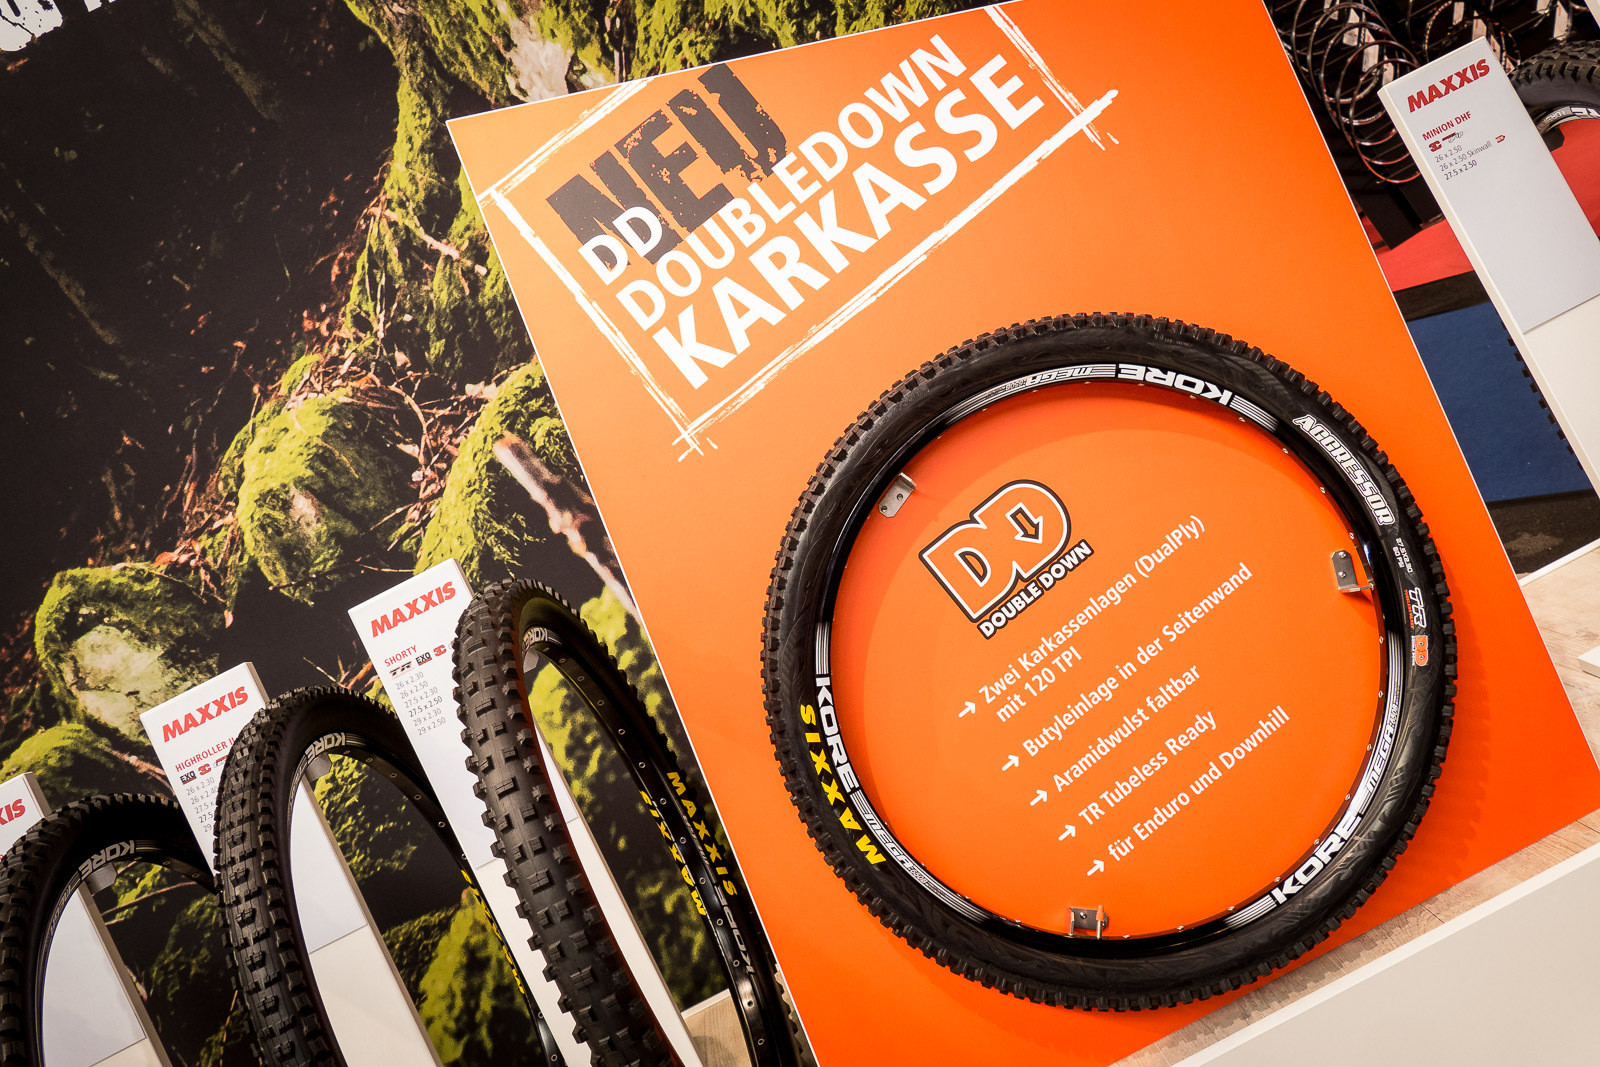 Maxxis Double Down Tire Casing - 2016 Mountain Bike Components at Eurobike - Mountain Biking Pictures - Vital MTB